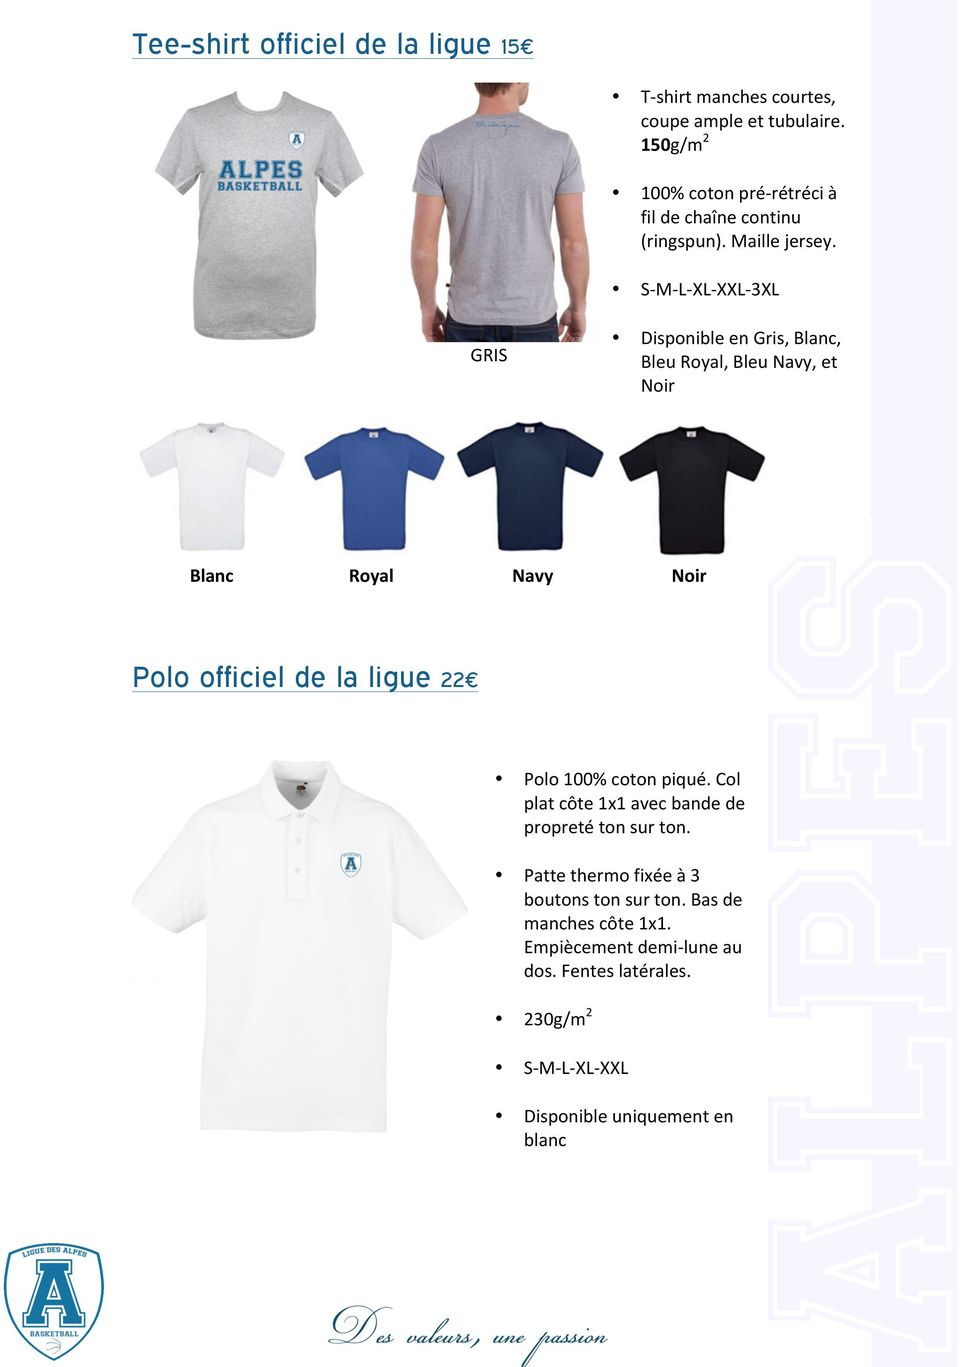 S- M- L- XL- XXL- 3XL GRIS Disponible en Gris, Blanc, Bleu Royal, Bleu Navy, et Noir Blanc Royal Navy Noir Polo officiel de la ligue 22